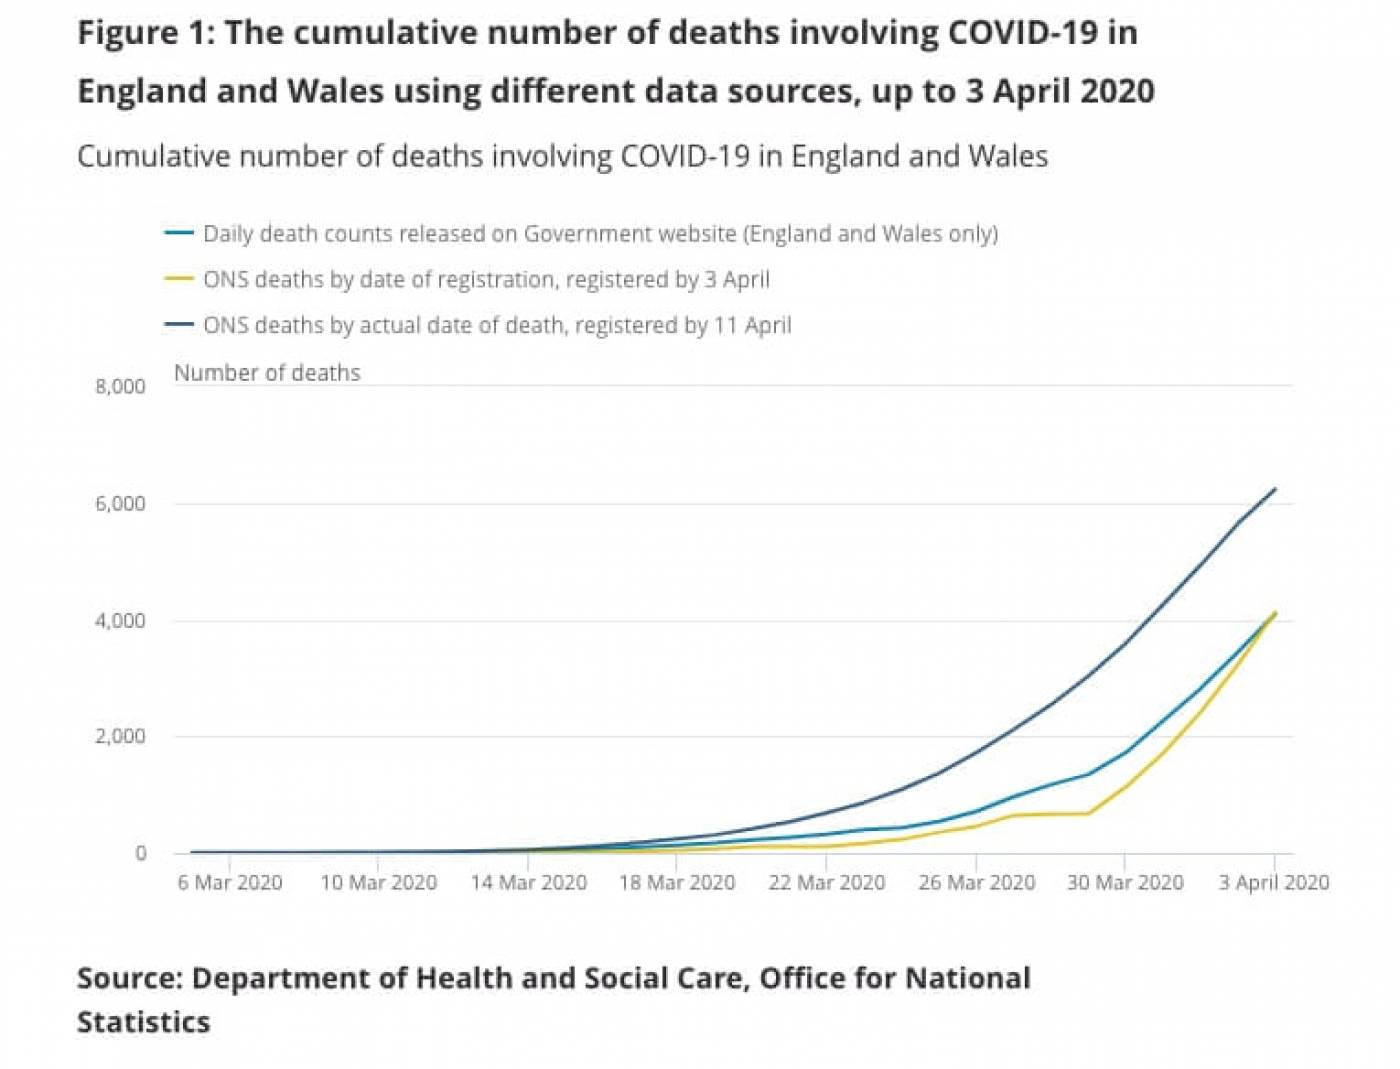 DHSC and ONS statistics